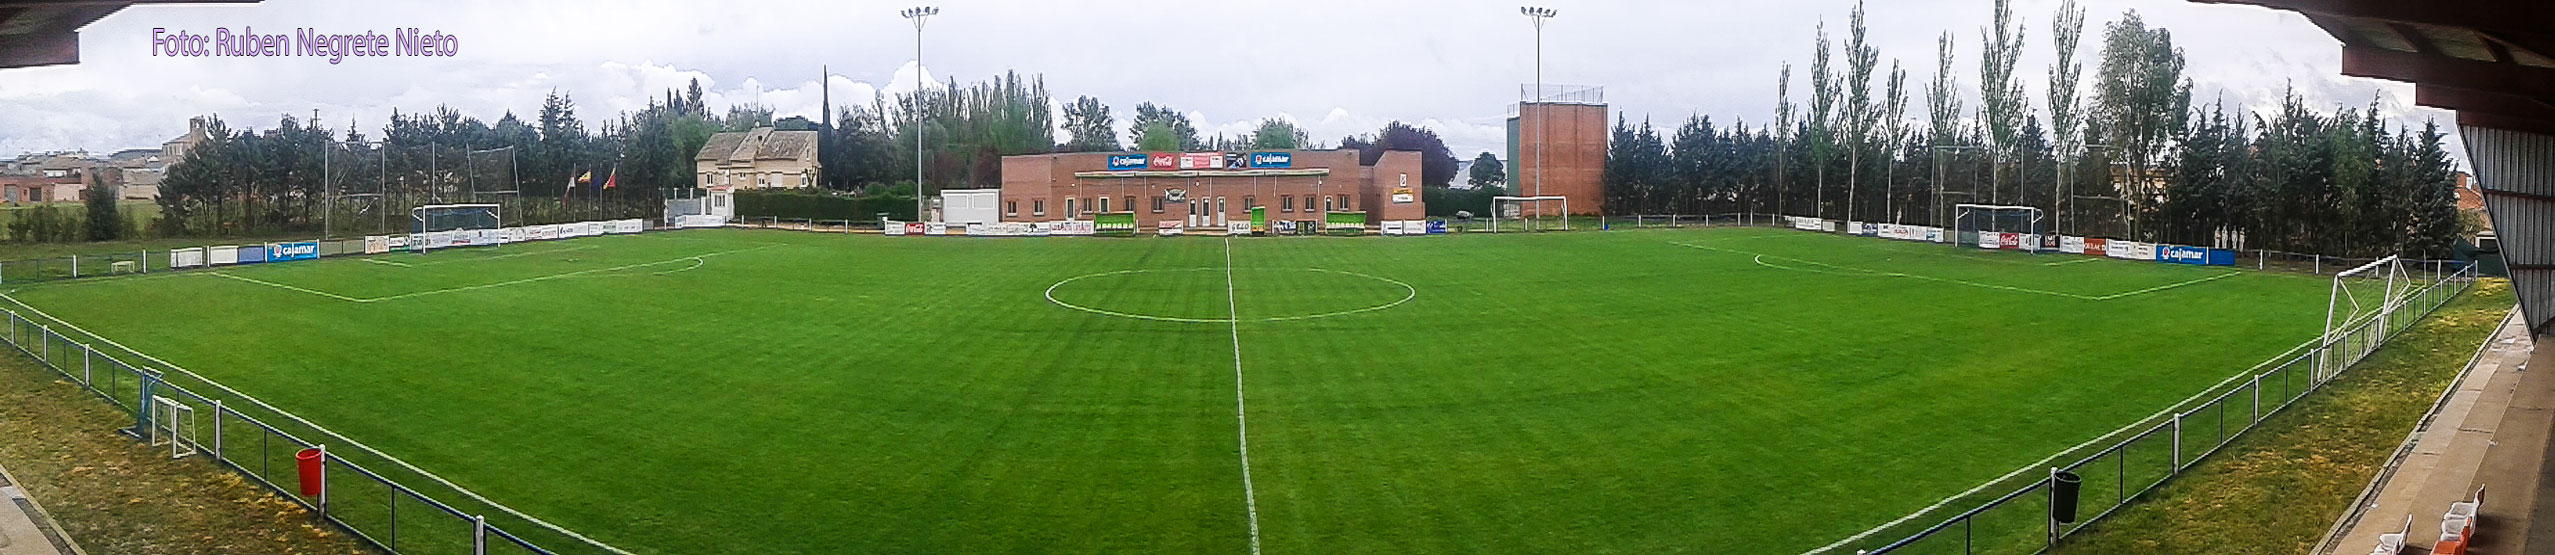 panoramica-estadio-becerril